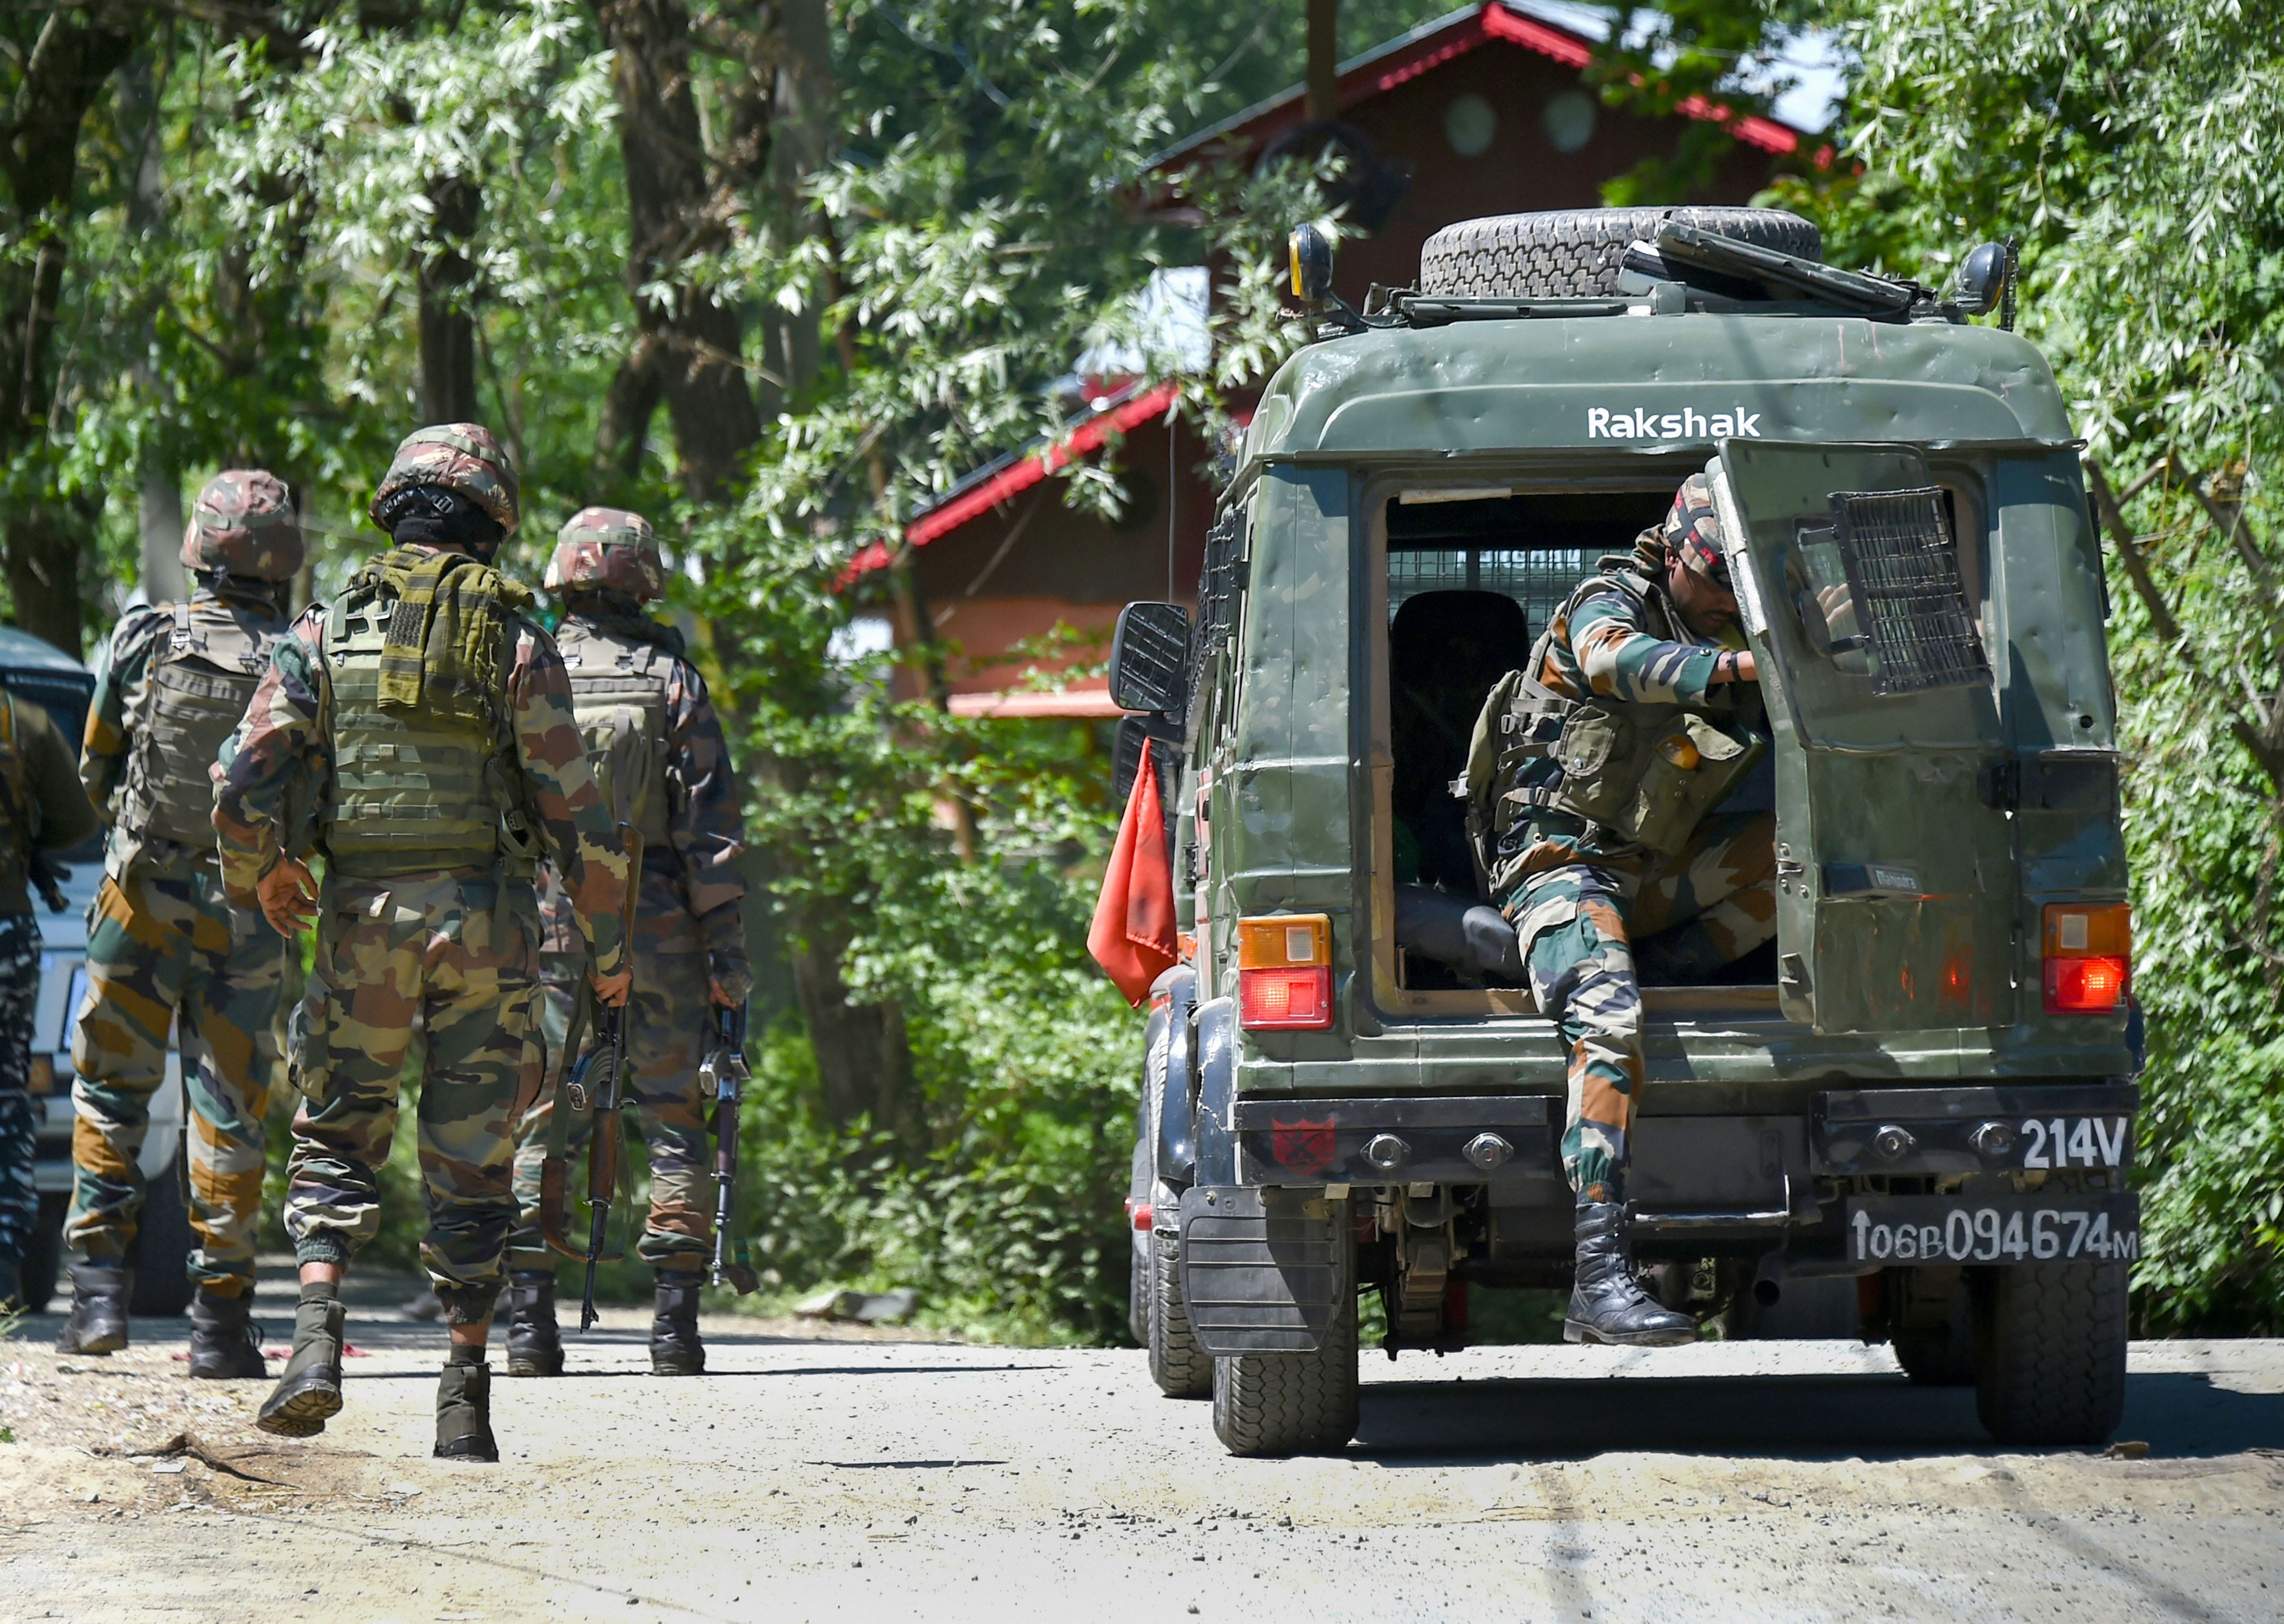 Indian Army soldiers arriving at the encounter site at Beighpora area in Pulwama district of South Kashmir, Wednesday, May 6, 2020